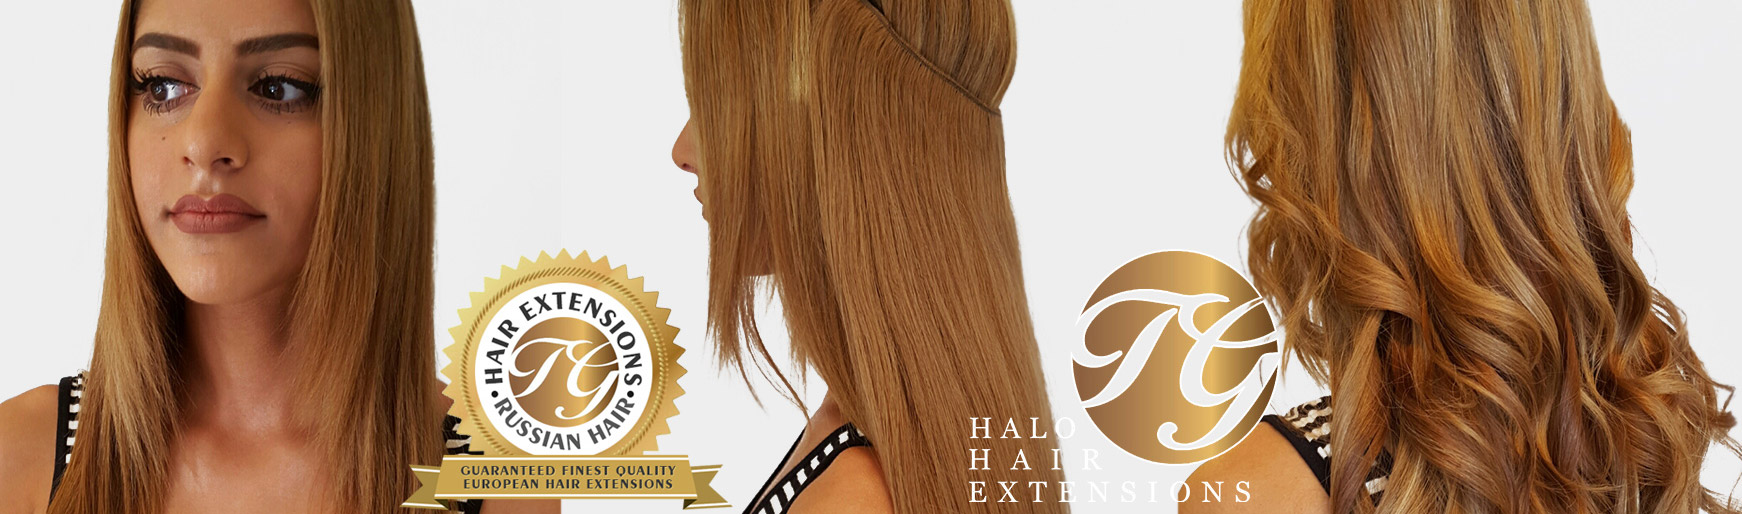 Halo Hair Extensions Stockists Melbourne Human Hair